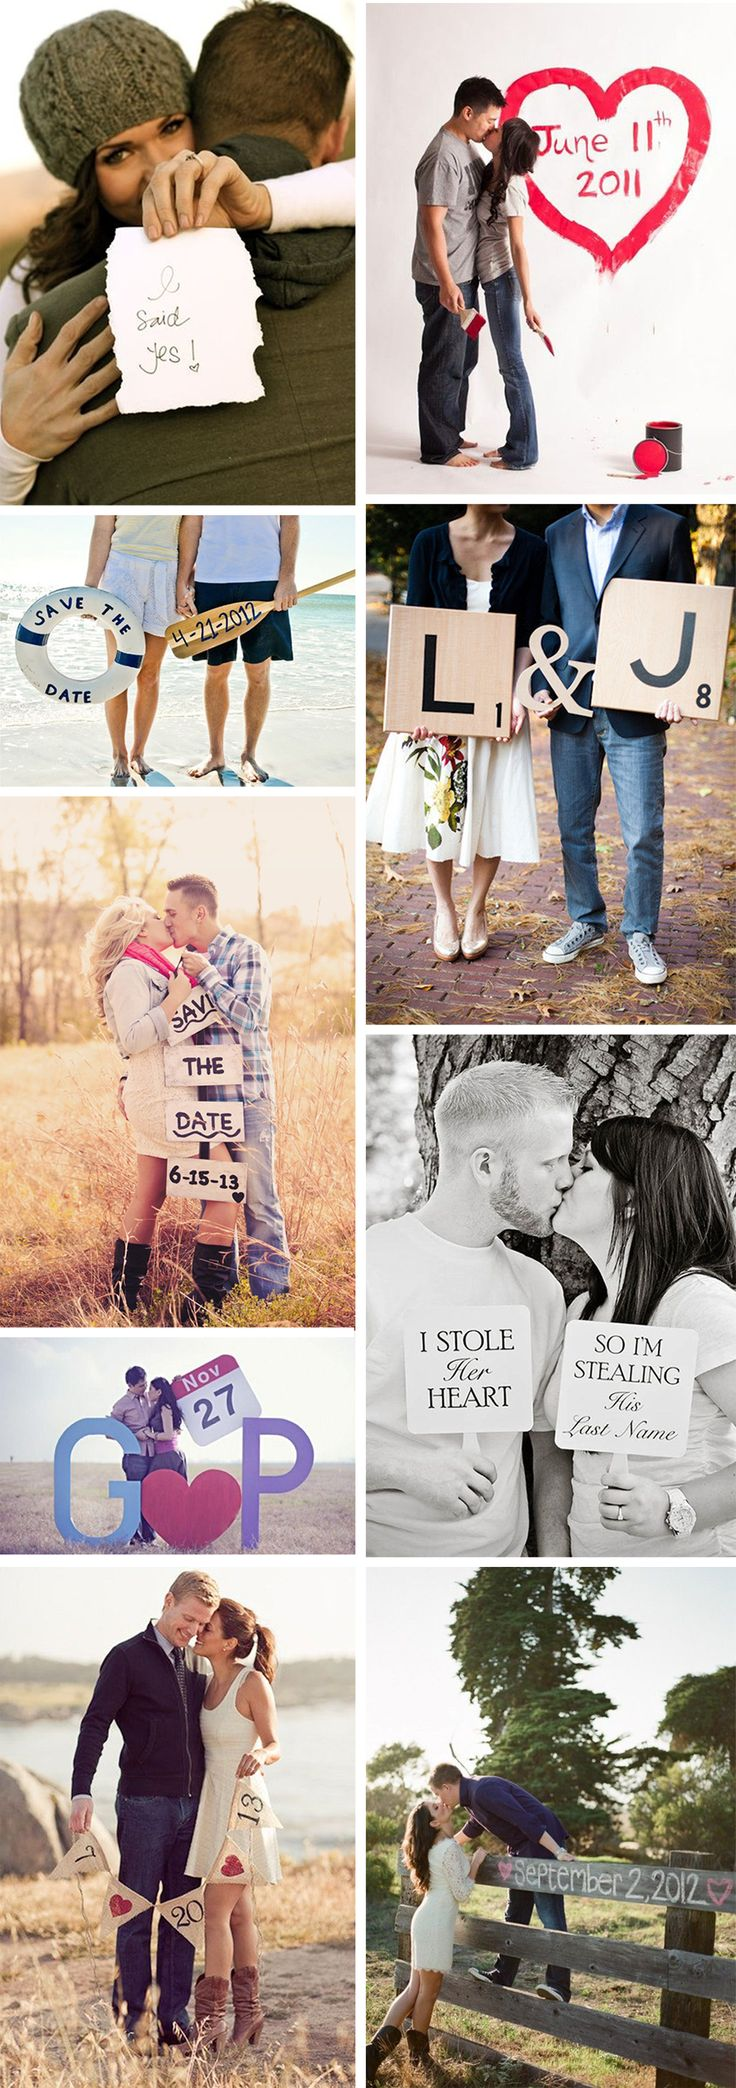 Engagement photos...love the bottom right